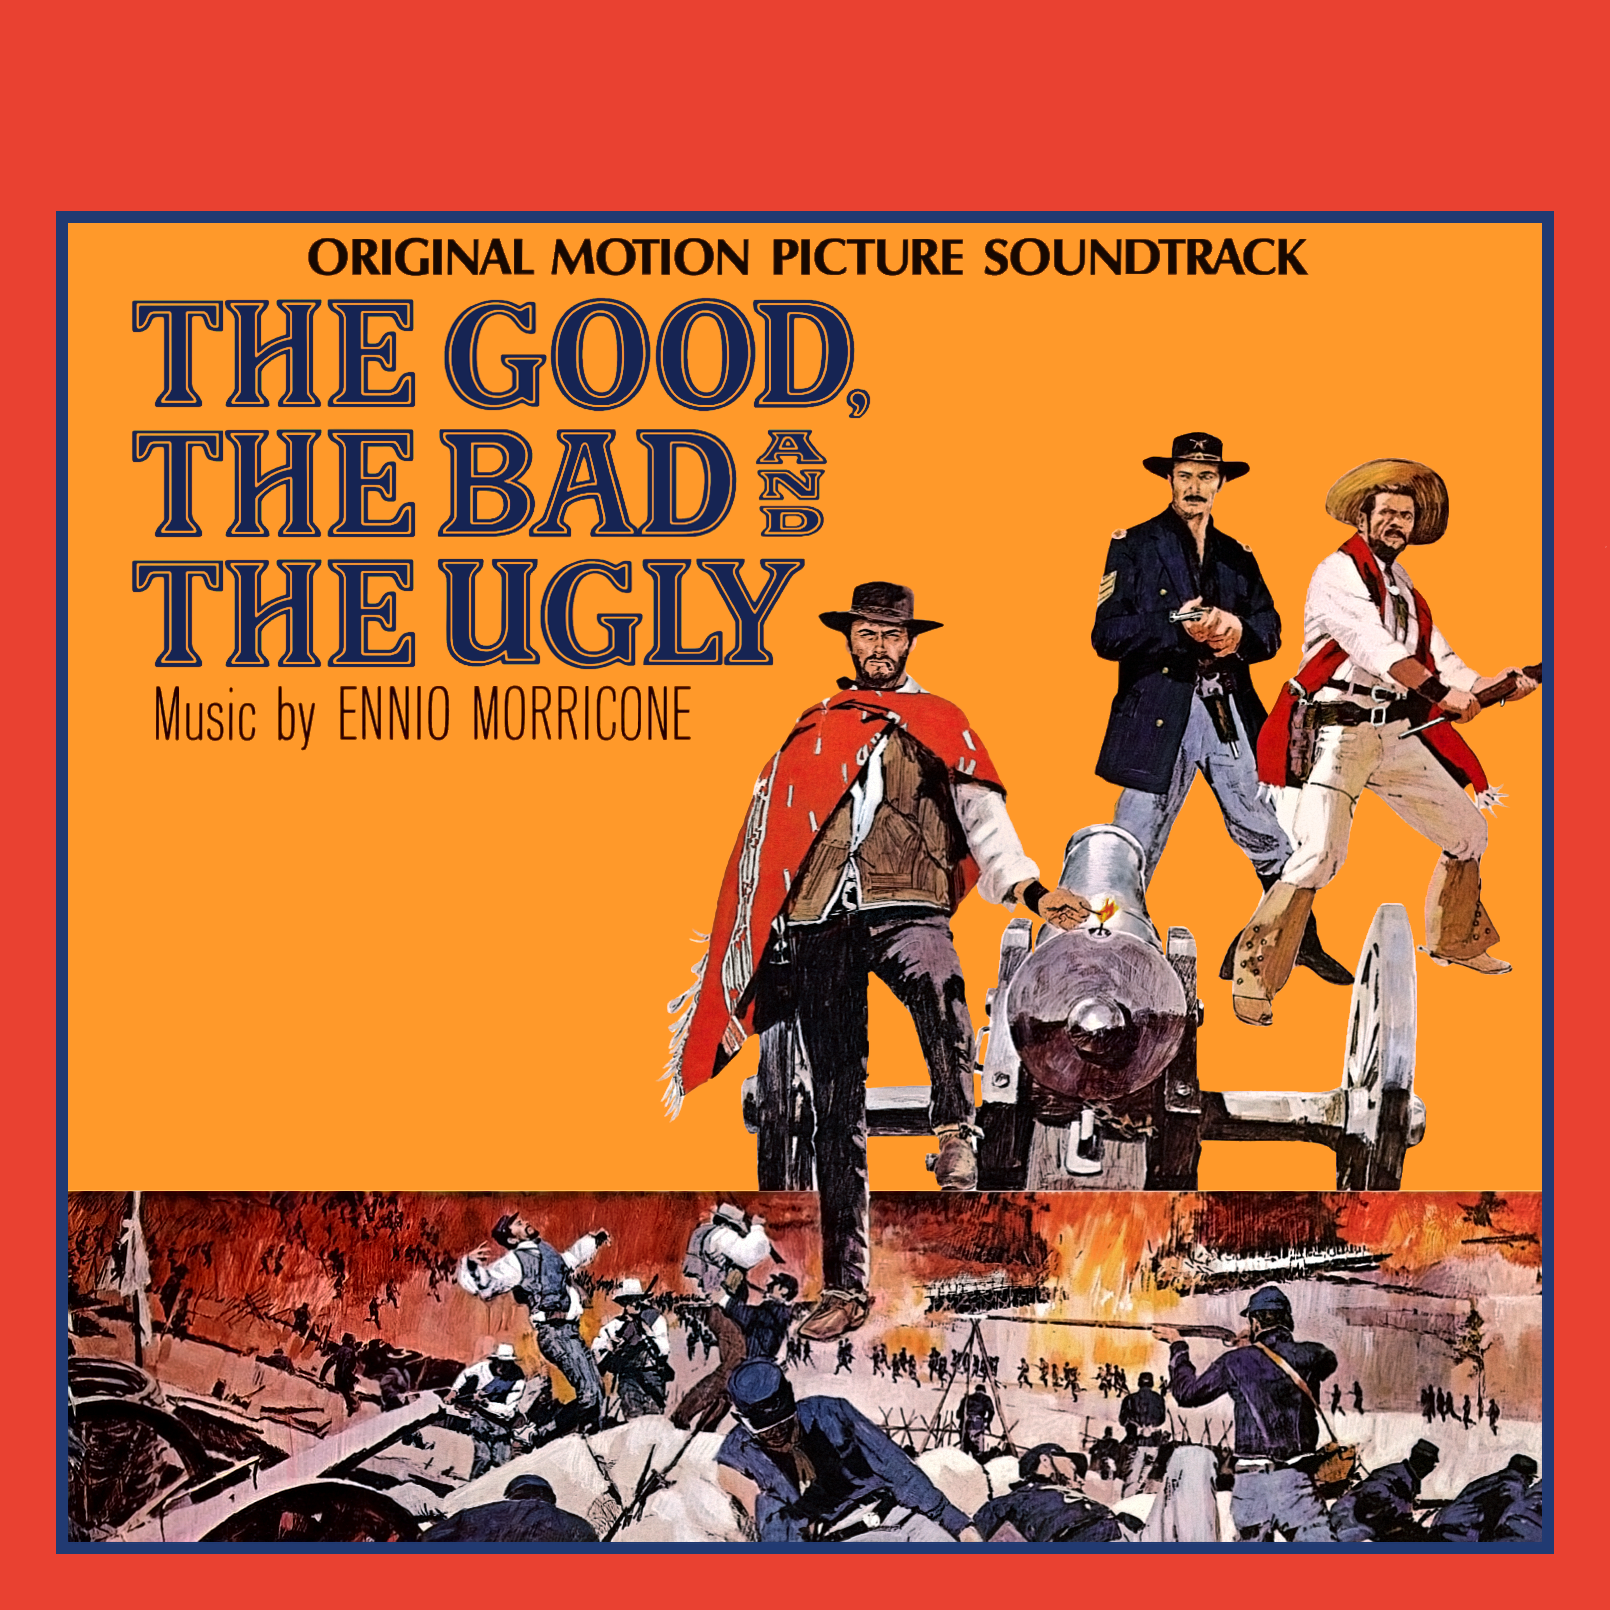 Album Artist: Ennio Morricone / Album Title: The Good, the Bad and the Ugly (Original Motion Picture Soundtrack)